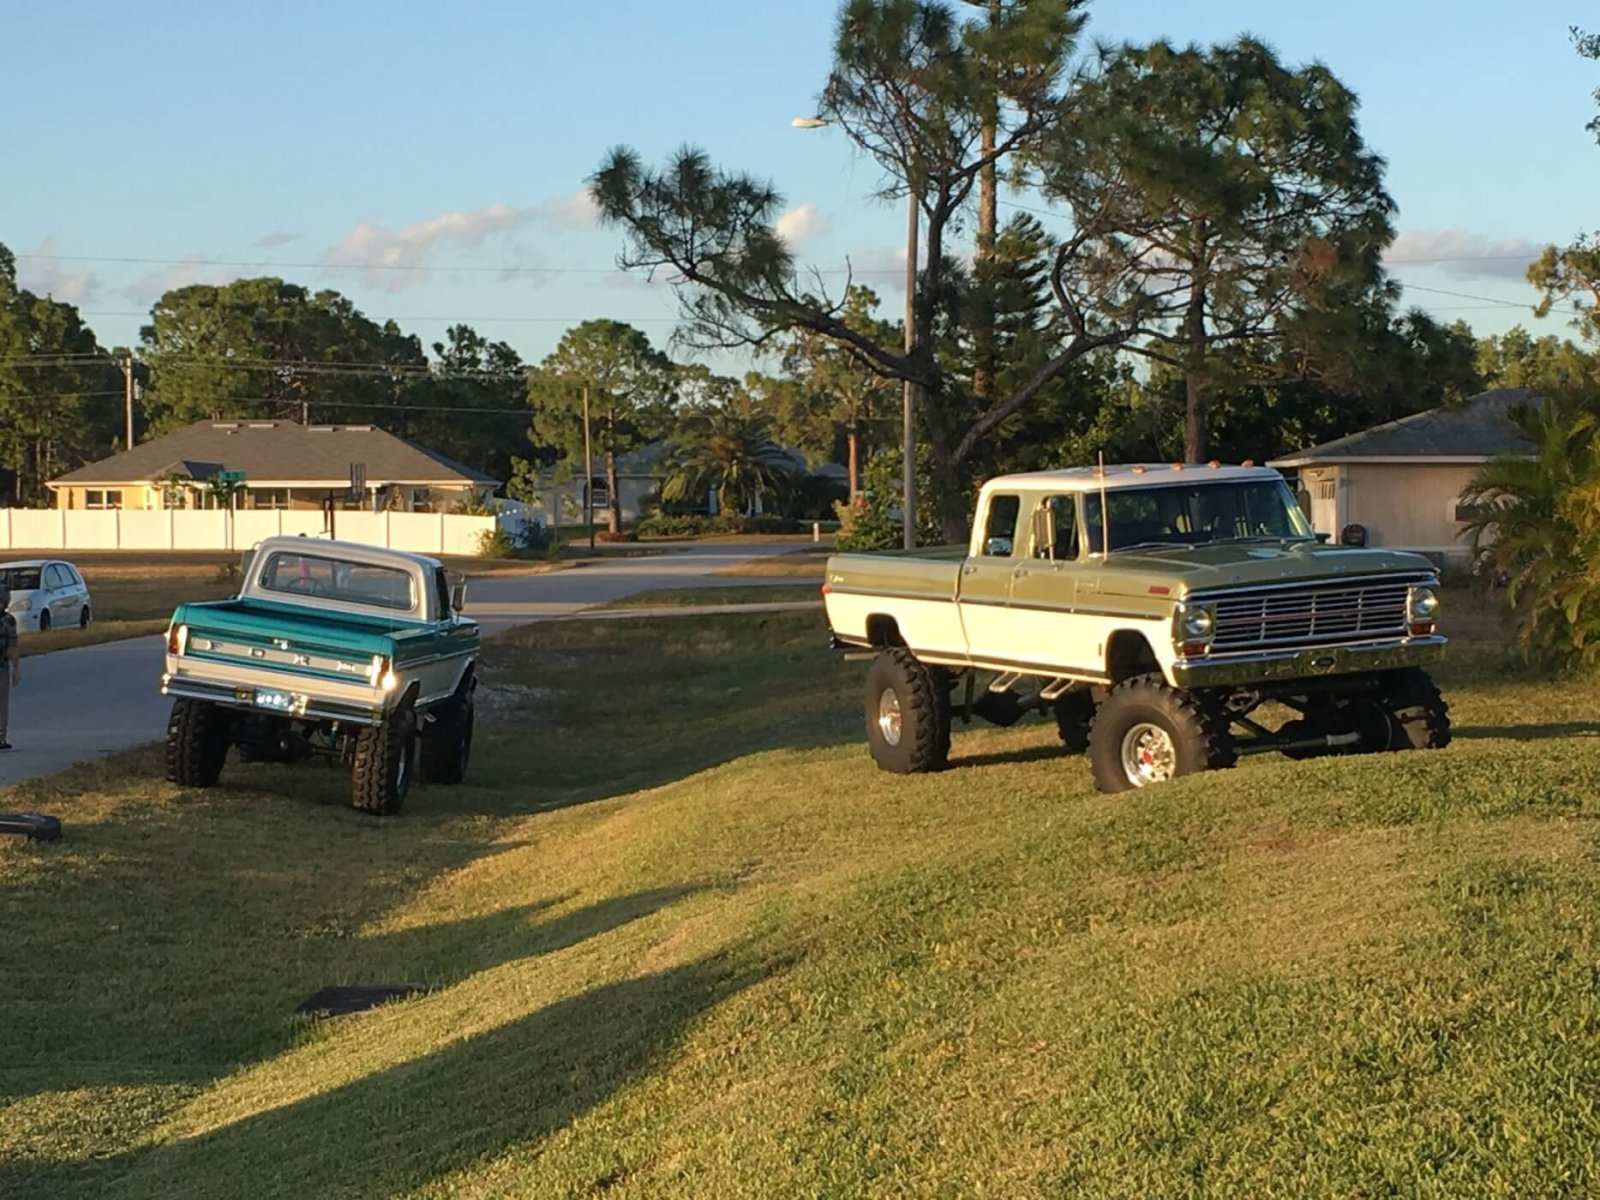 1967 Ford F250 Story About Truck Owner Justin L 6.jpeg